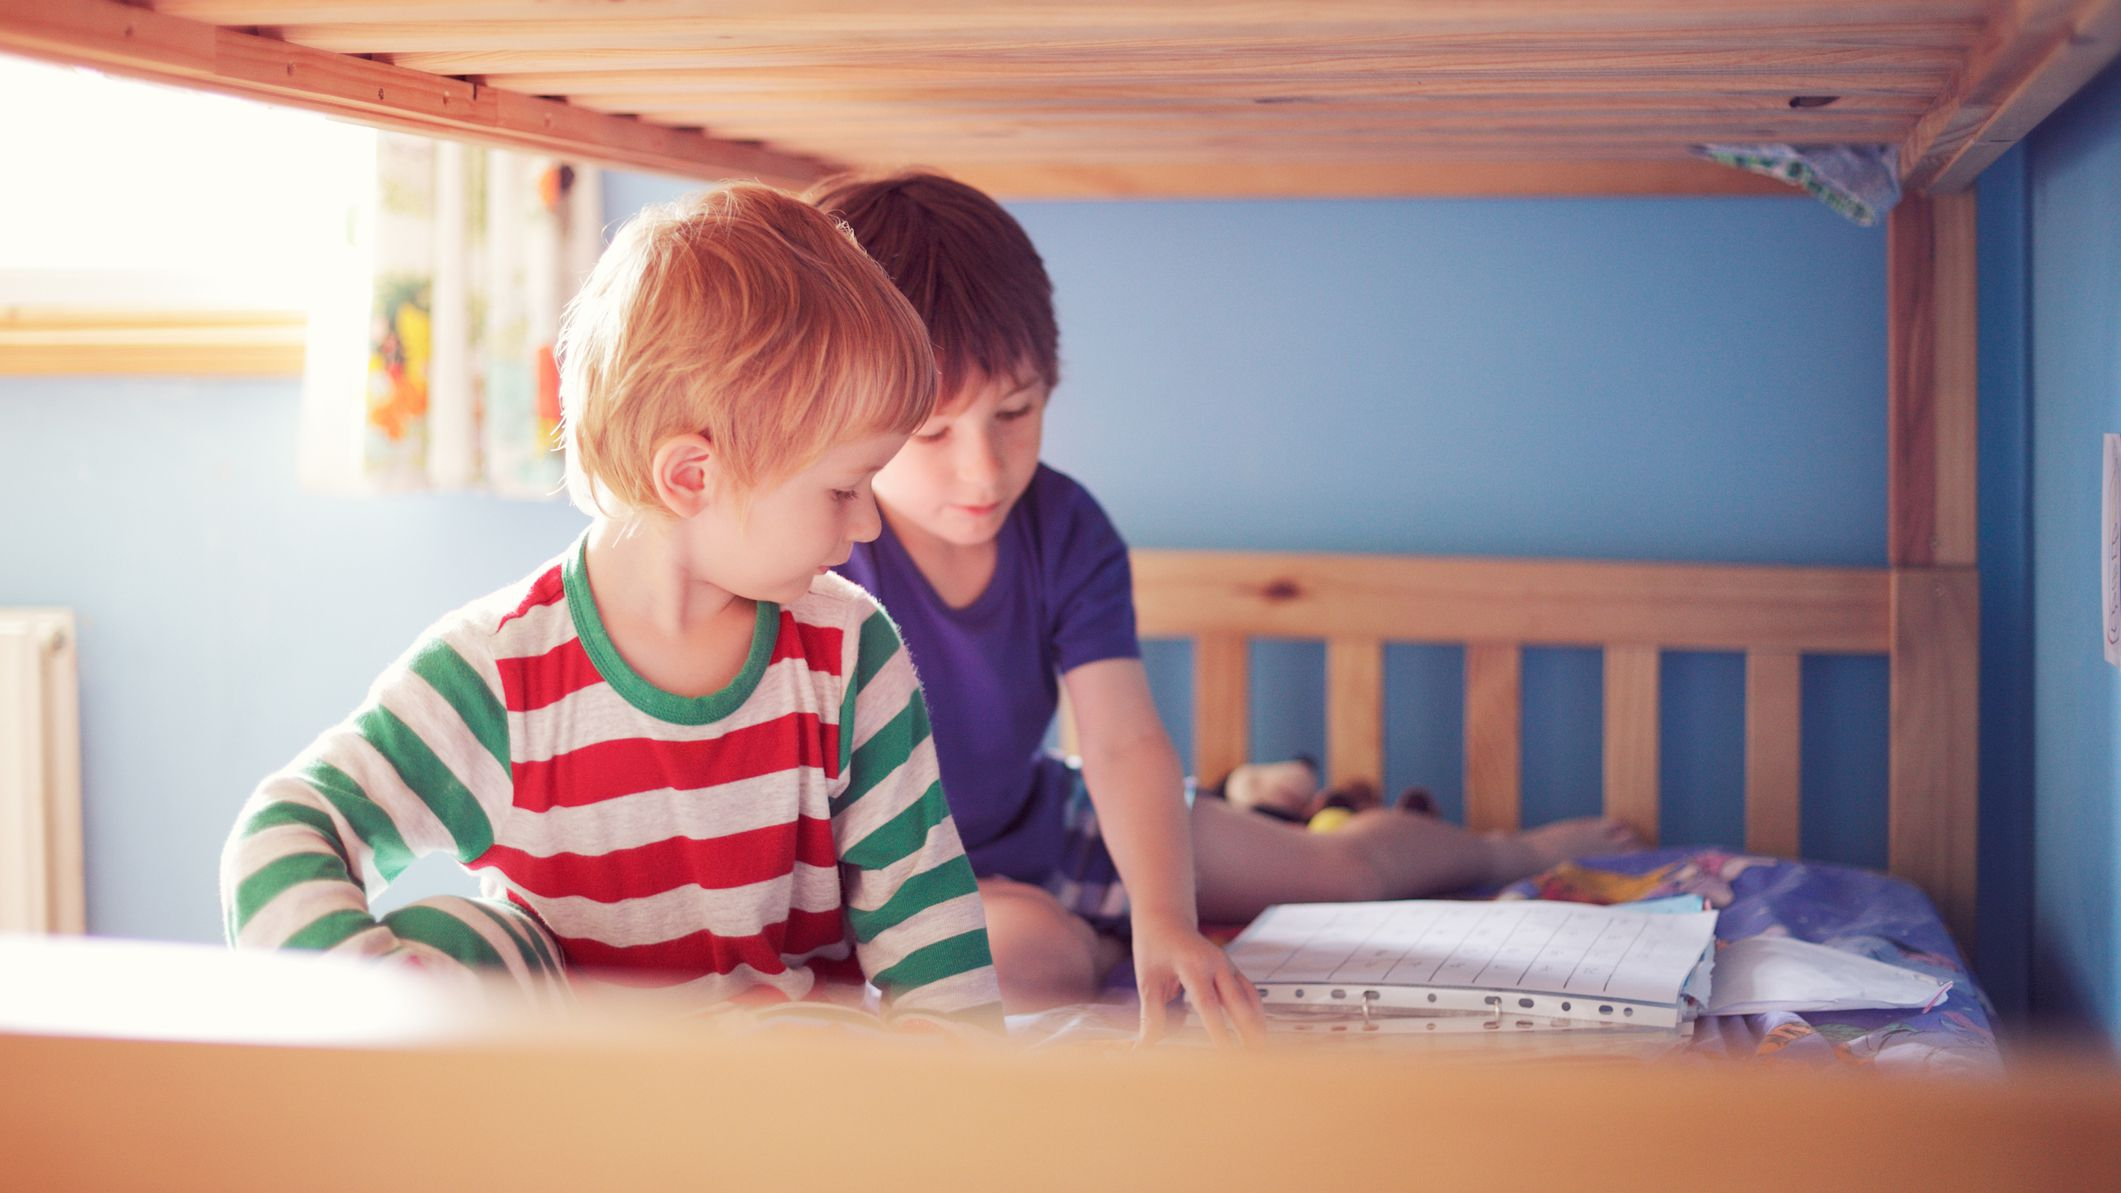 Sibling Relationships In Shared Rooms